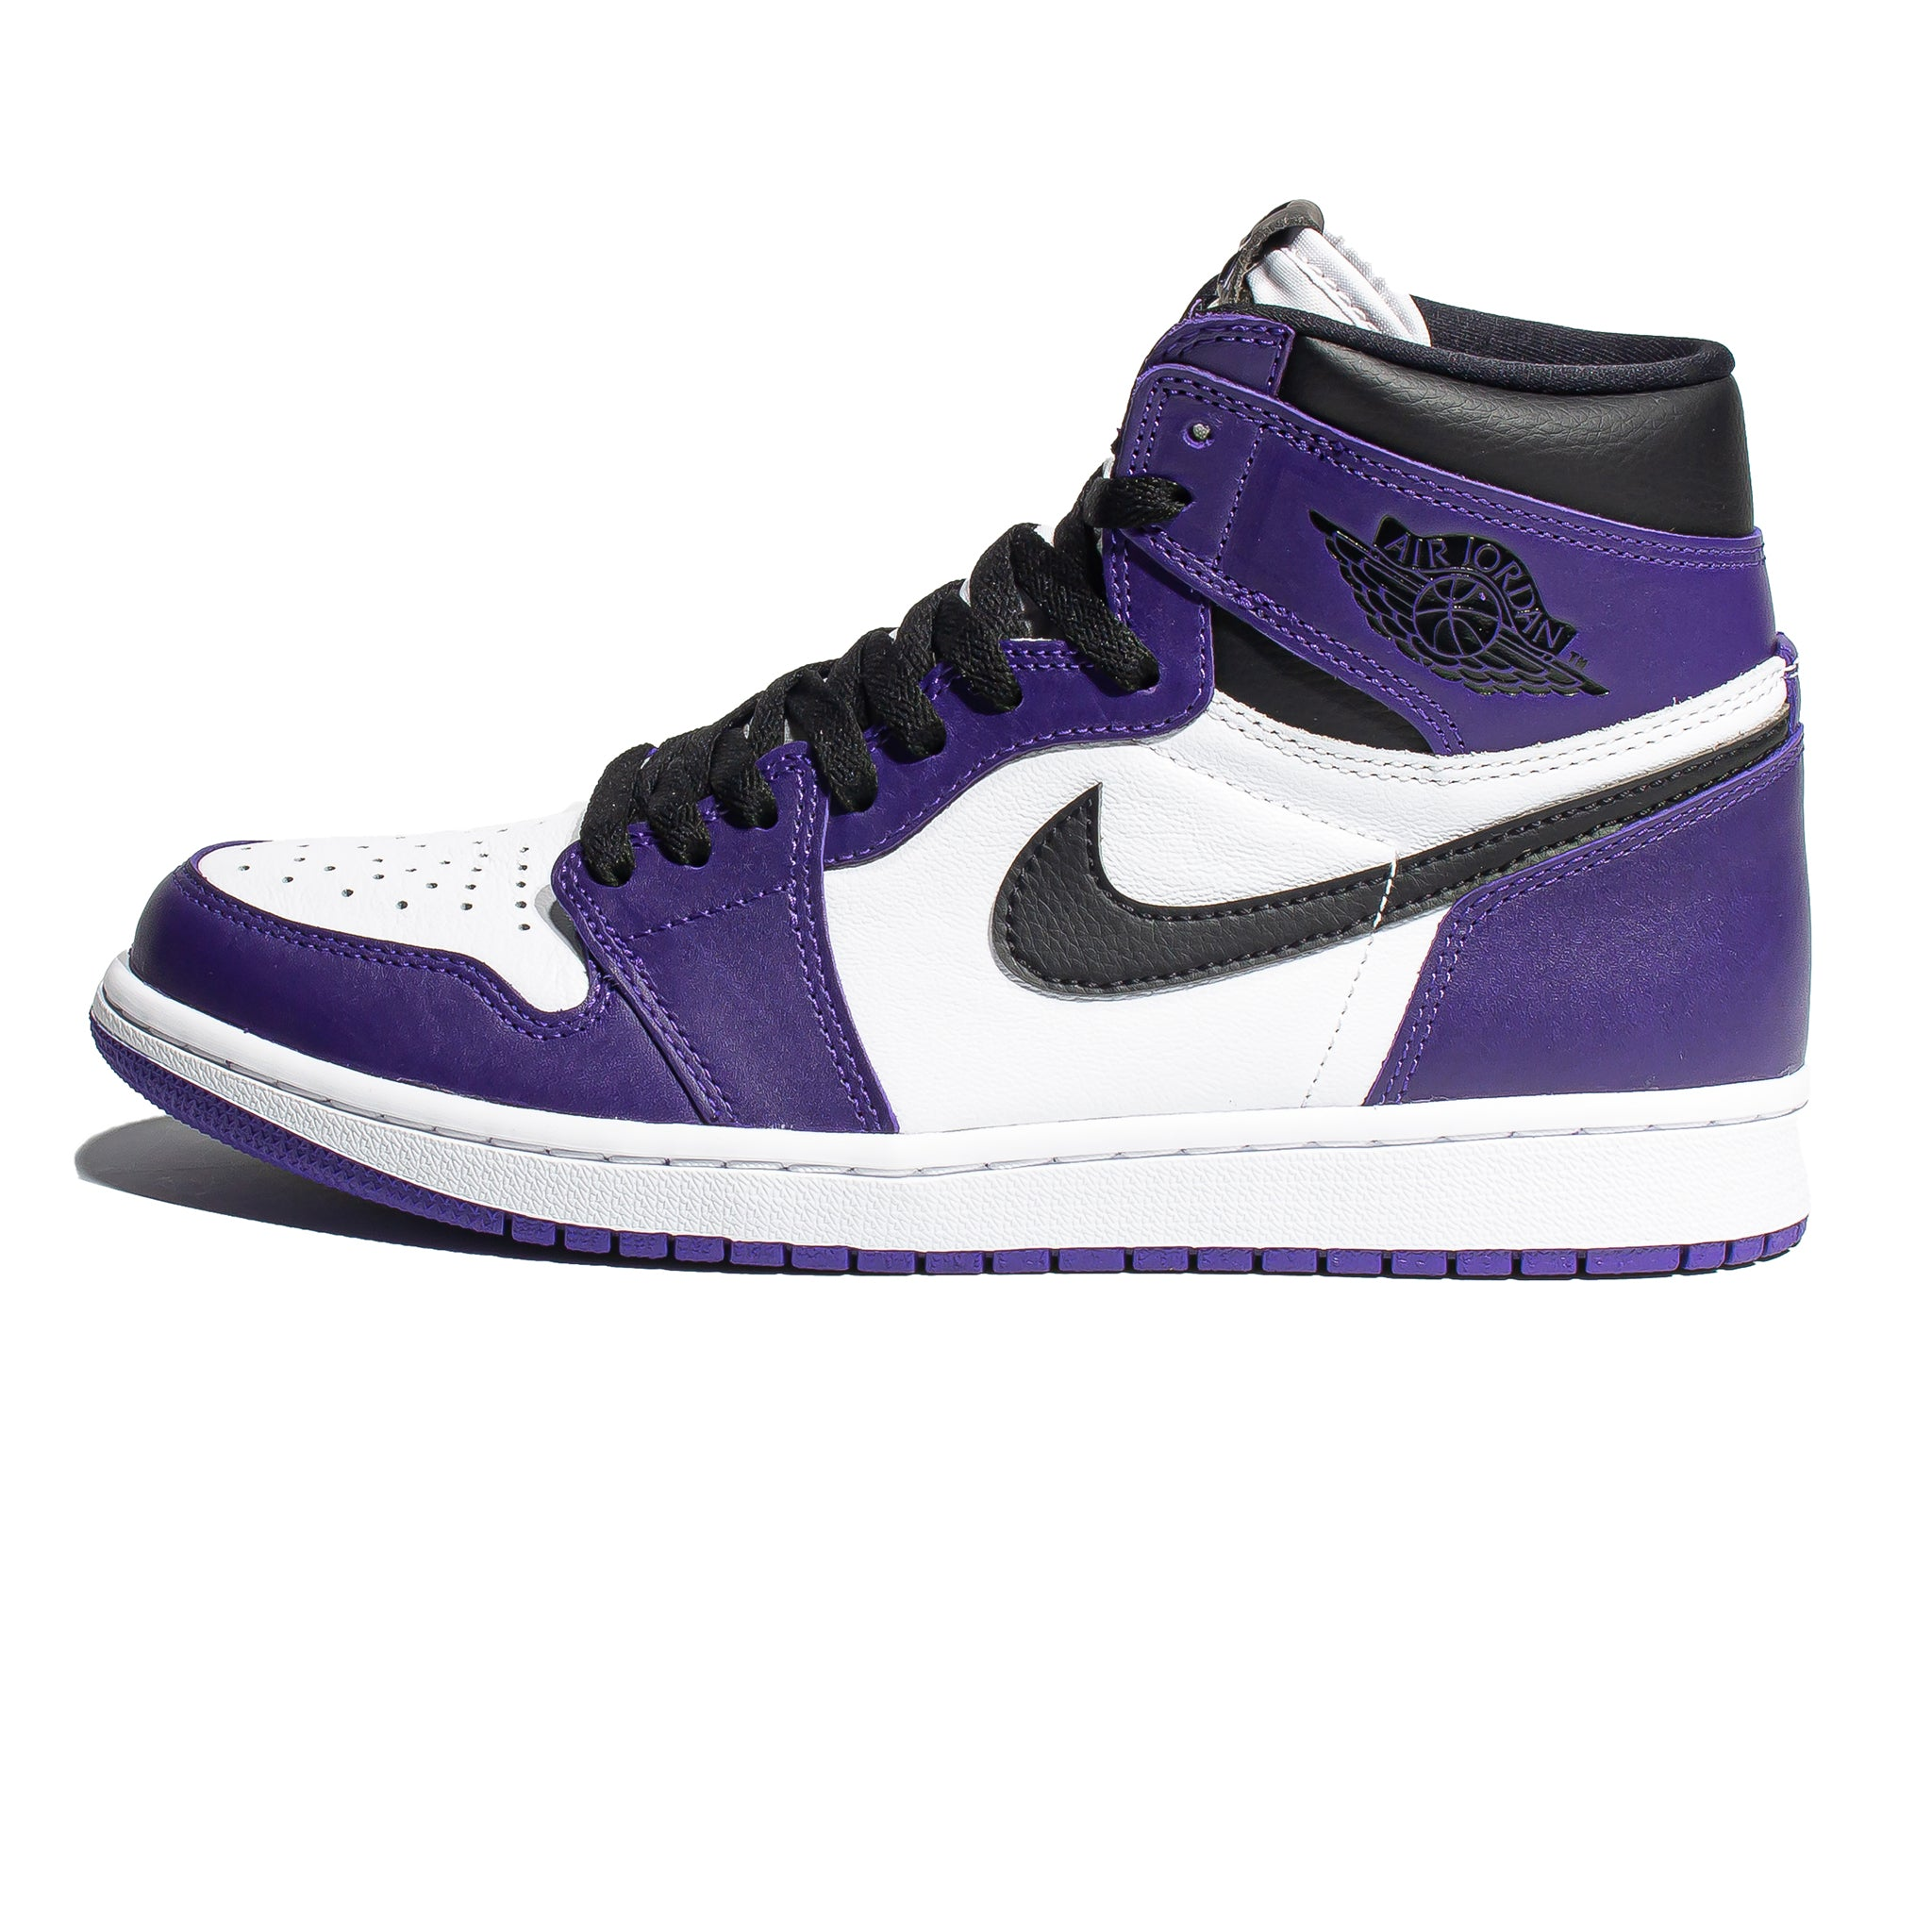 Air Jordan 1 Retro High 'Court Purple'